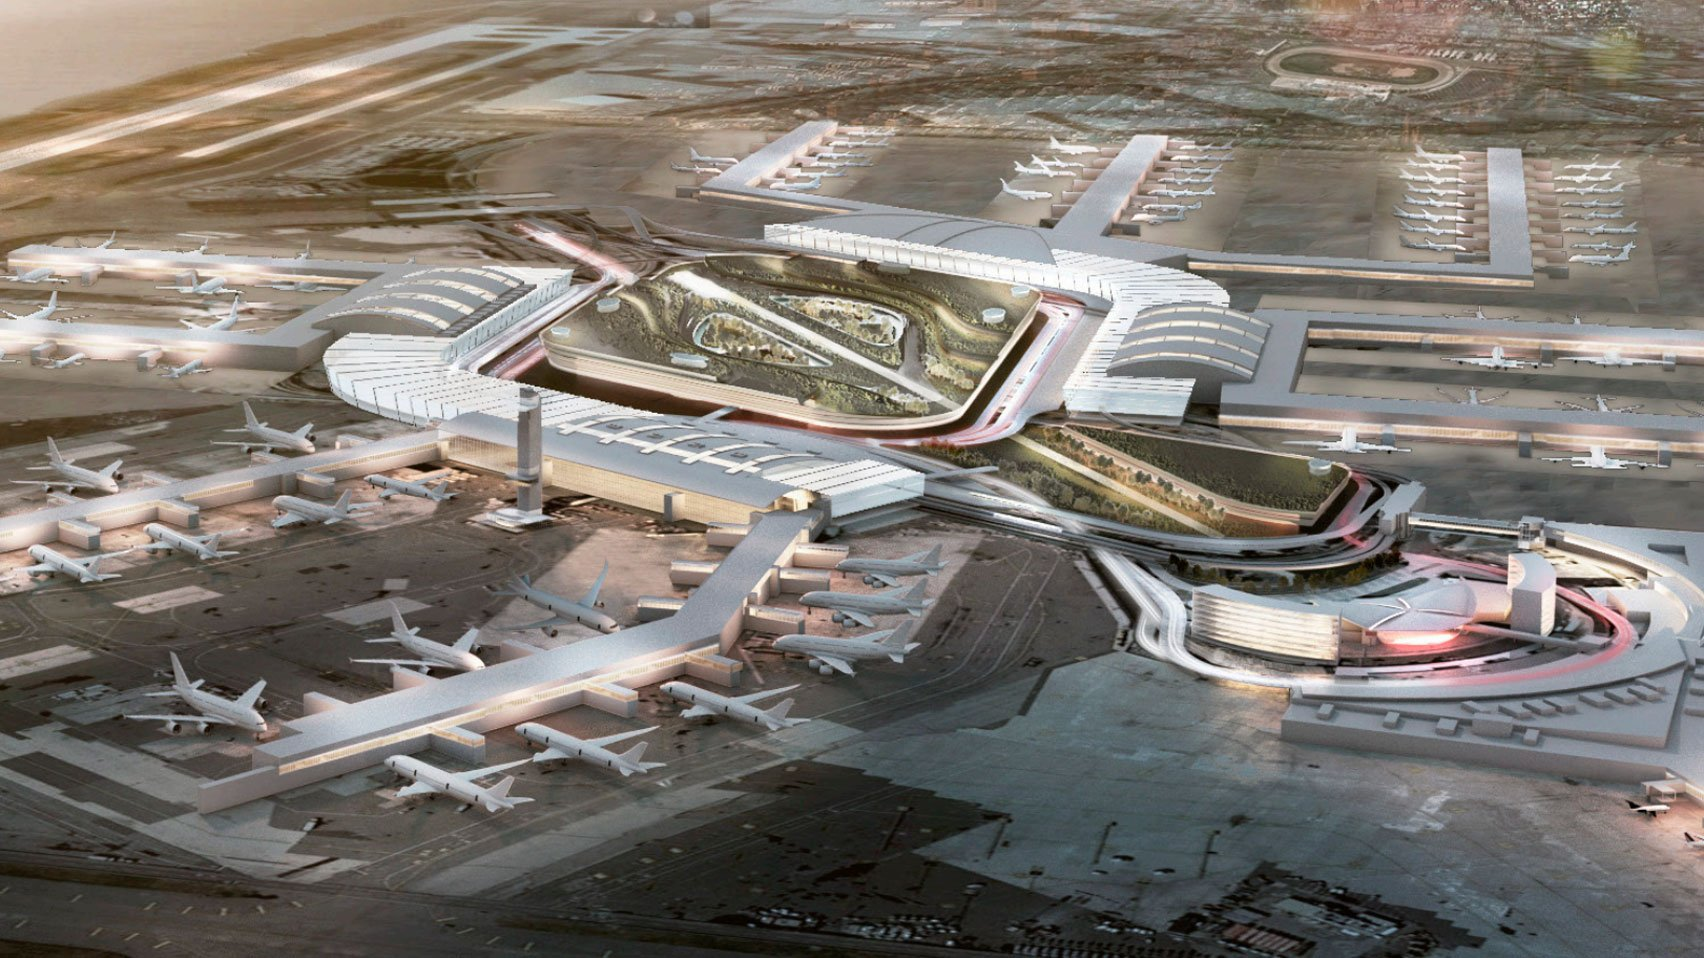 JFK revamp plans